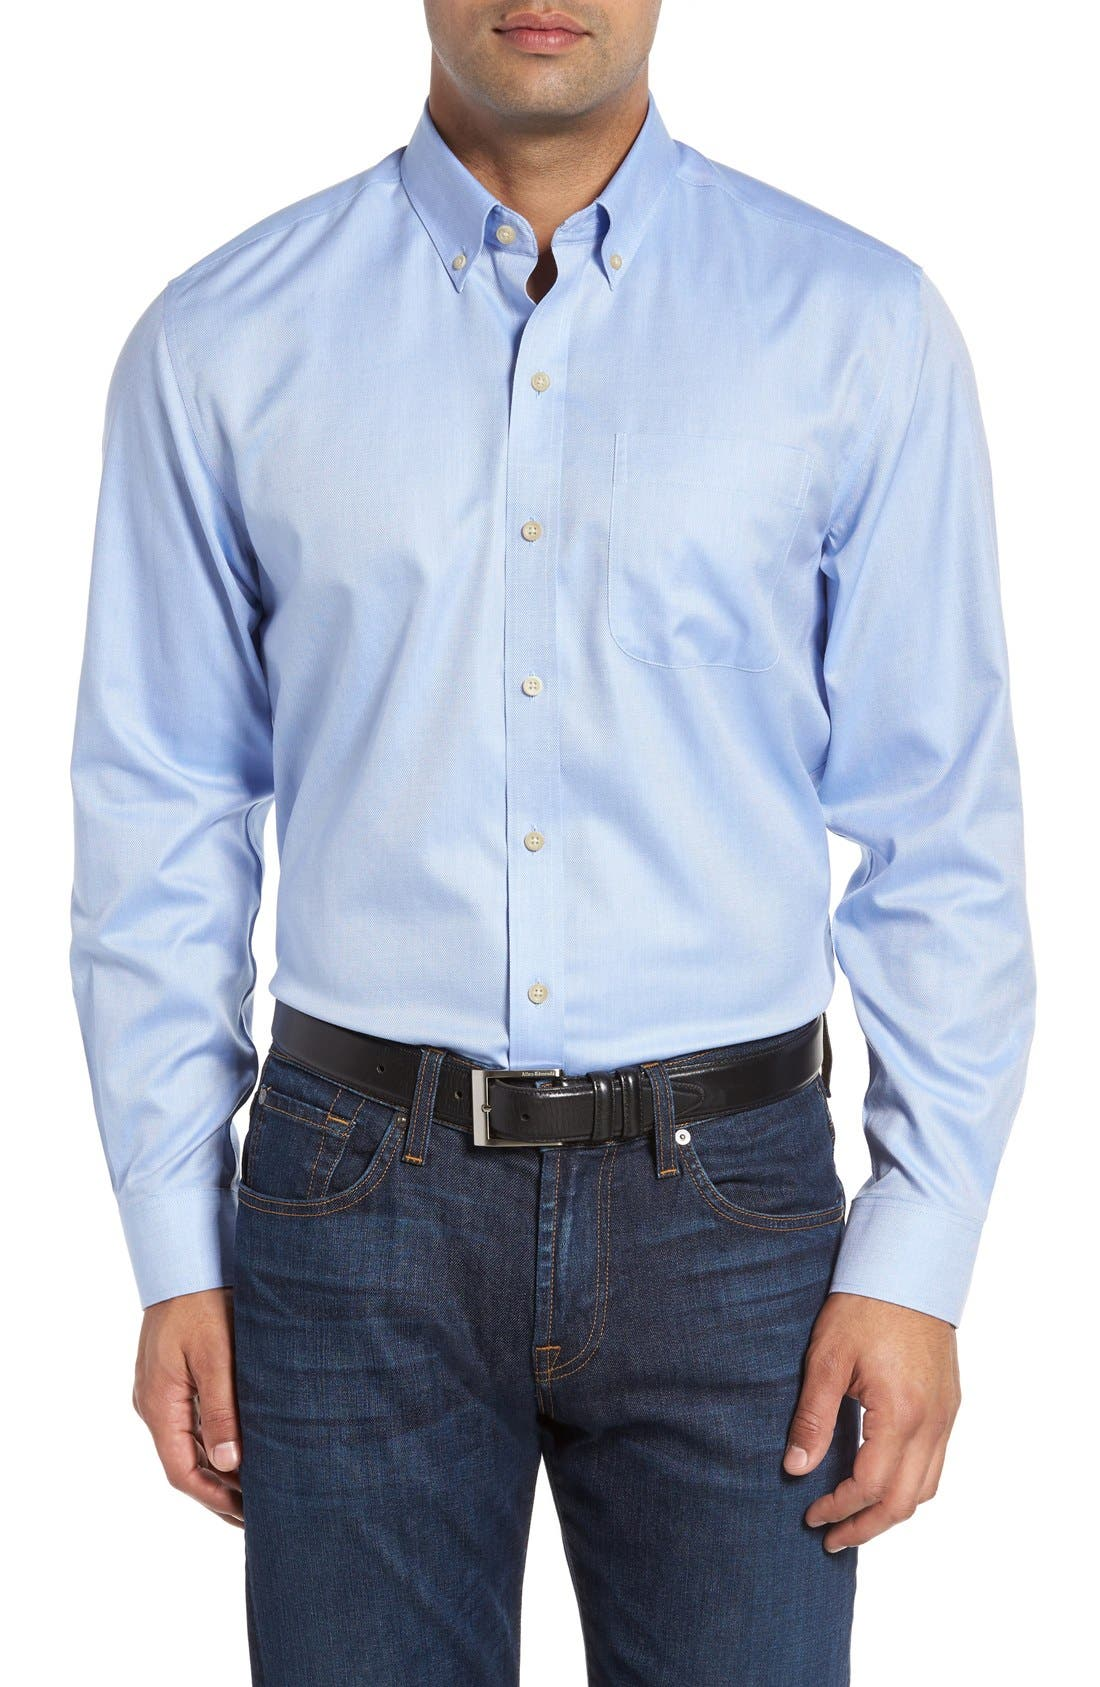 Main Image - Cutter & Buck San Juan Classic Fit Wrinkle Free Solid Sport Shirt